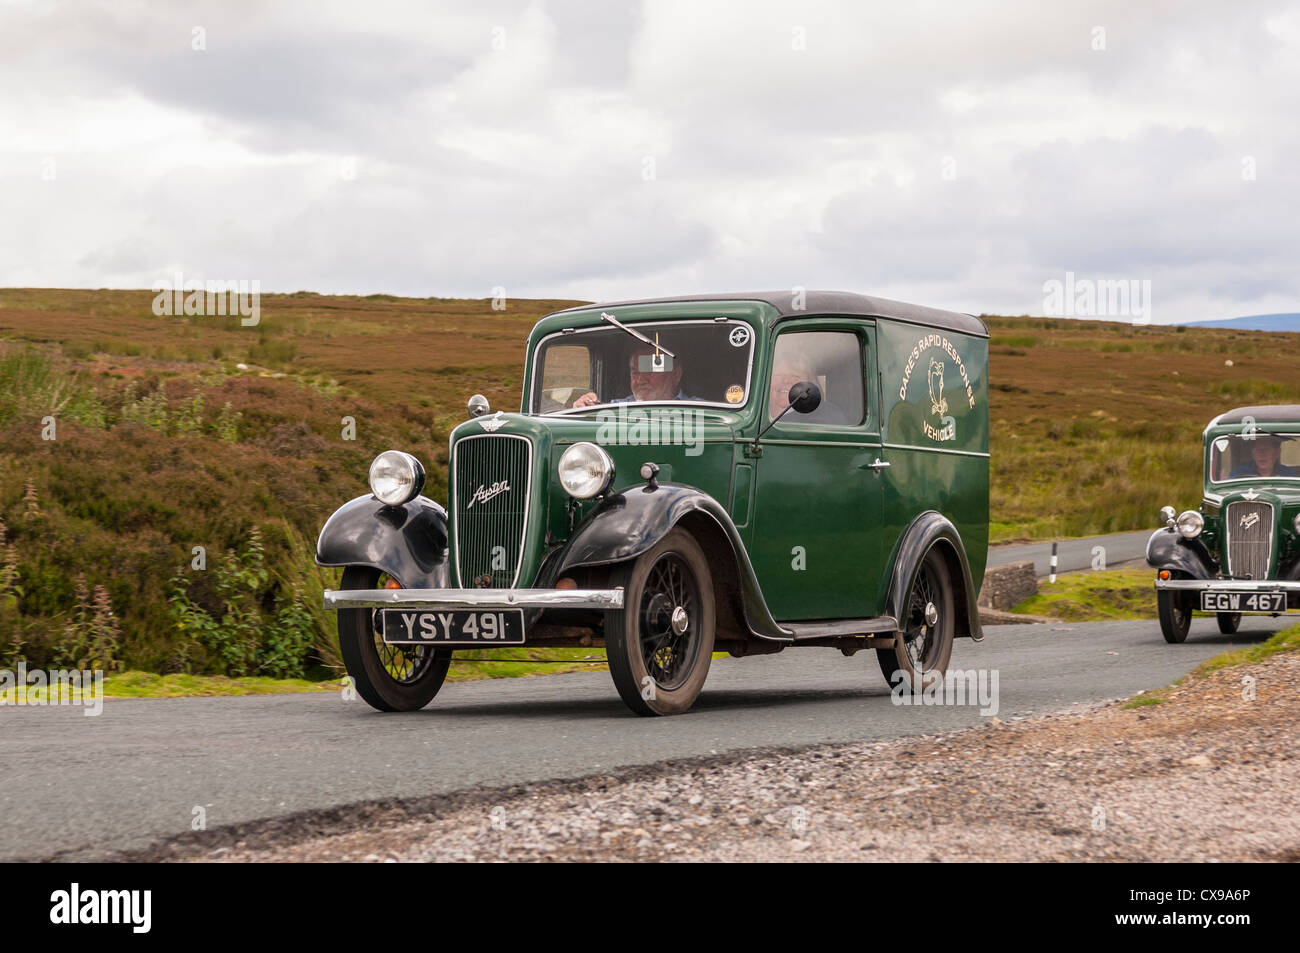 A Vintage Austin Classic Car Driving Through The Yorkshire Dales